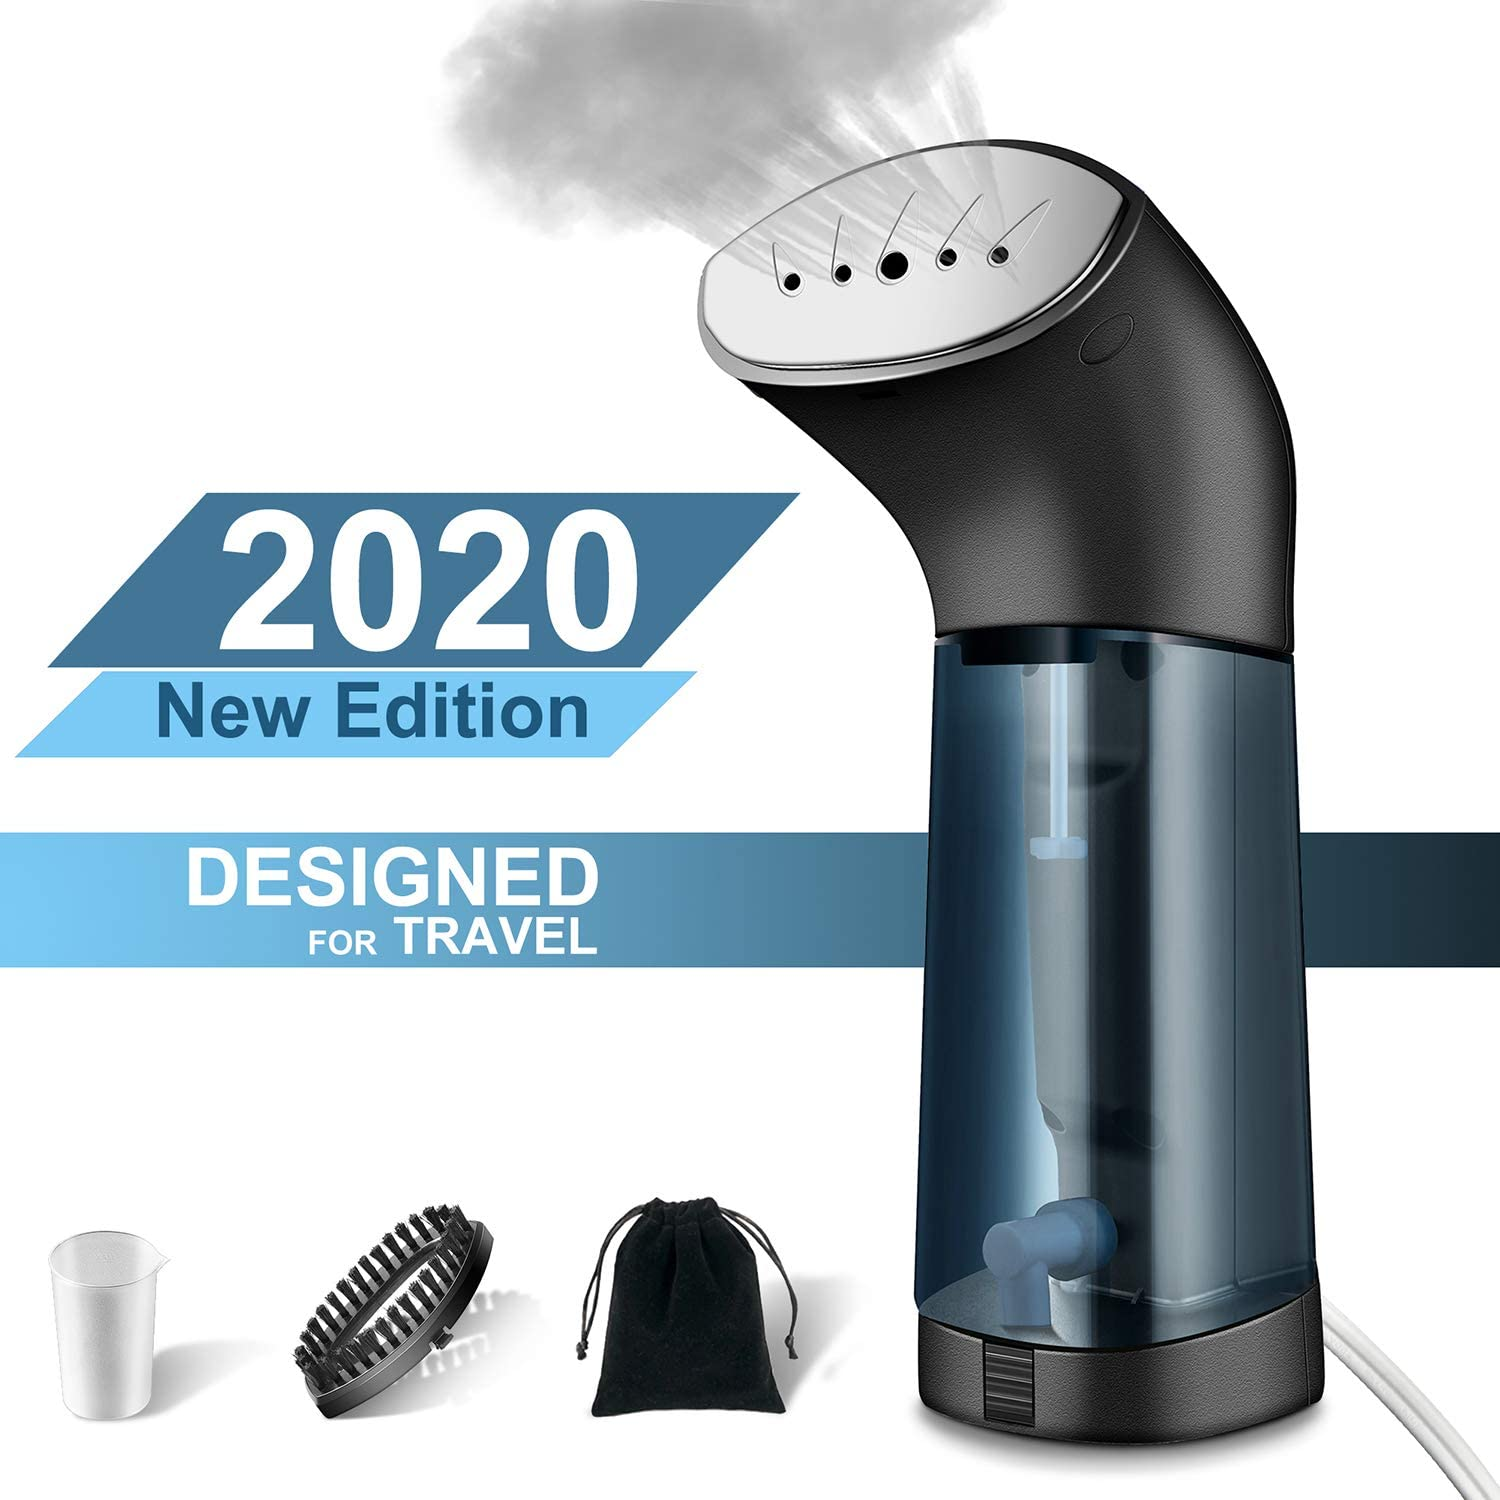 M-MASTER Portable Travel Steamer for Clothes Mini Fabric Steamer (Black) - Fast-Heating, Ergonomic Handheld Design with Easy-Fill Water Tank for 10 Minutes for All Kind of Garments. Home/Travel.